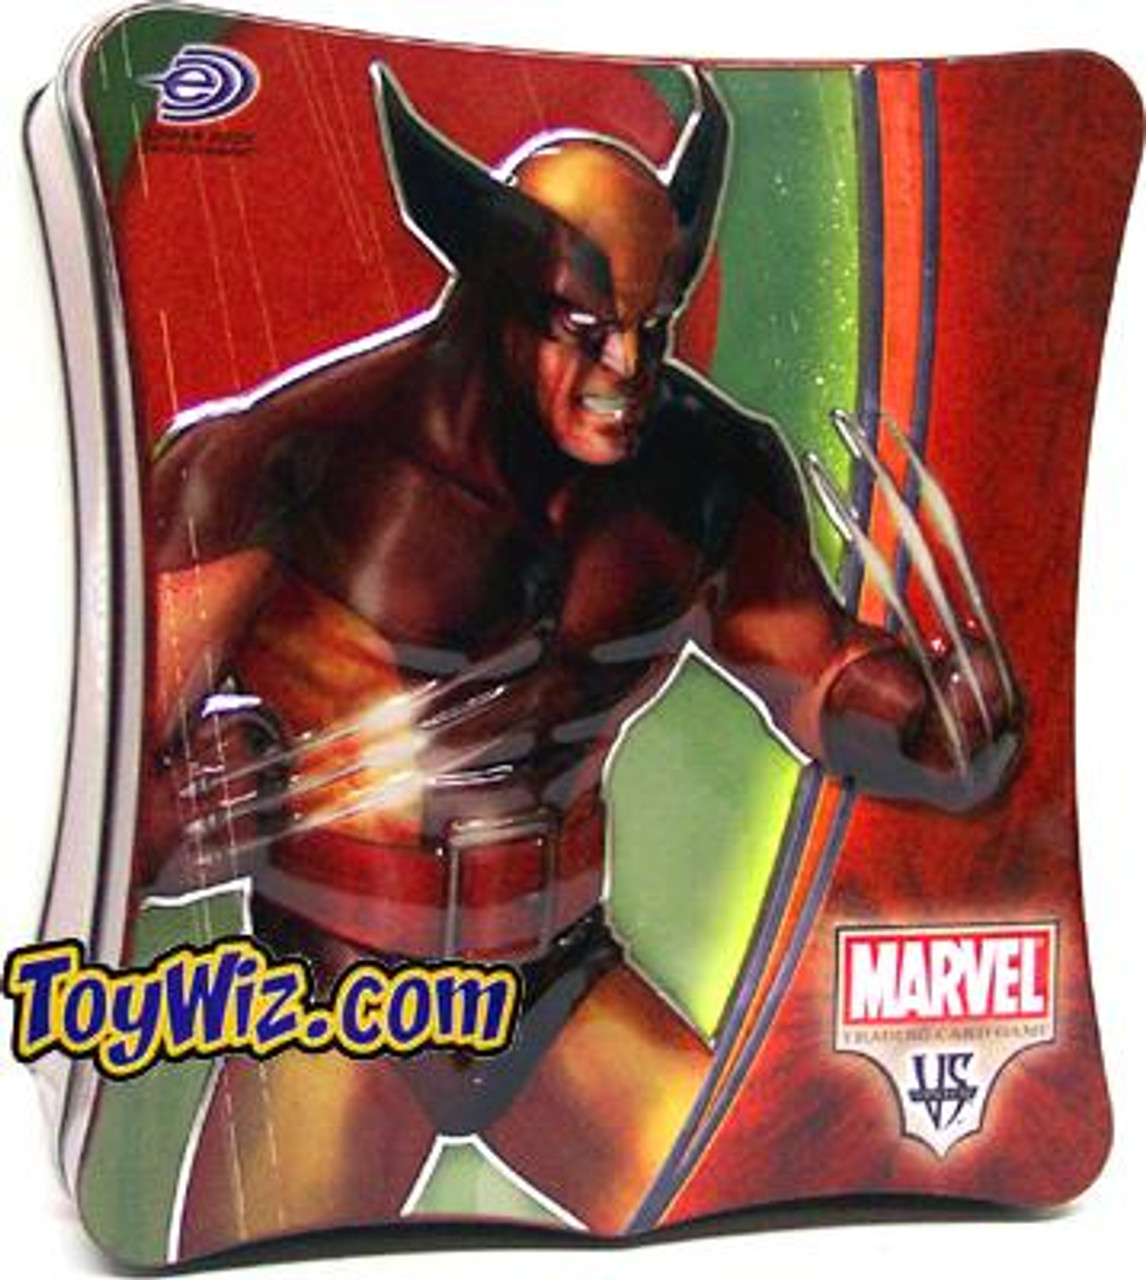 Marvel VS System Trading Card Game Wolverine Collectible Tin